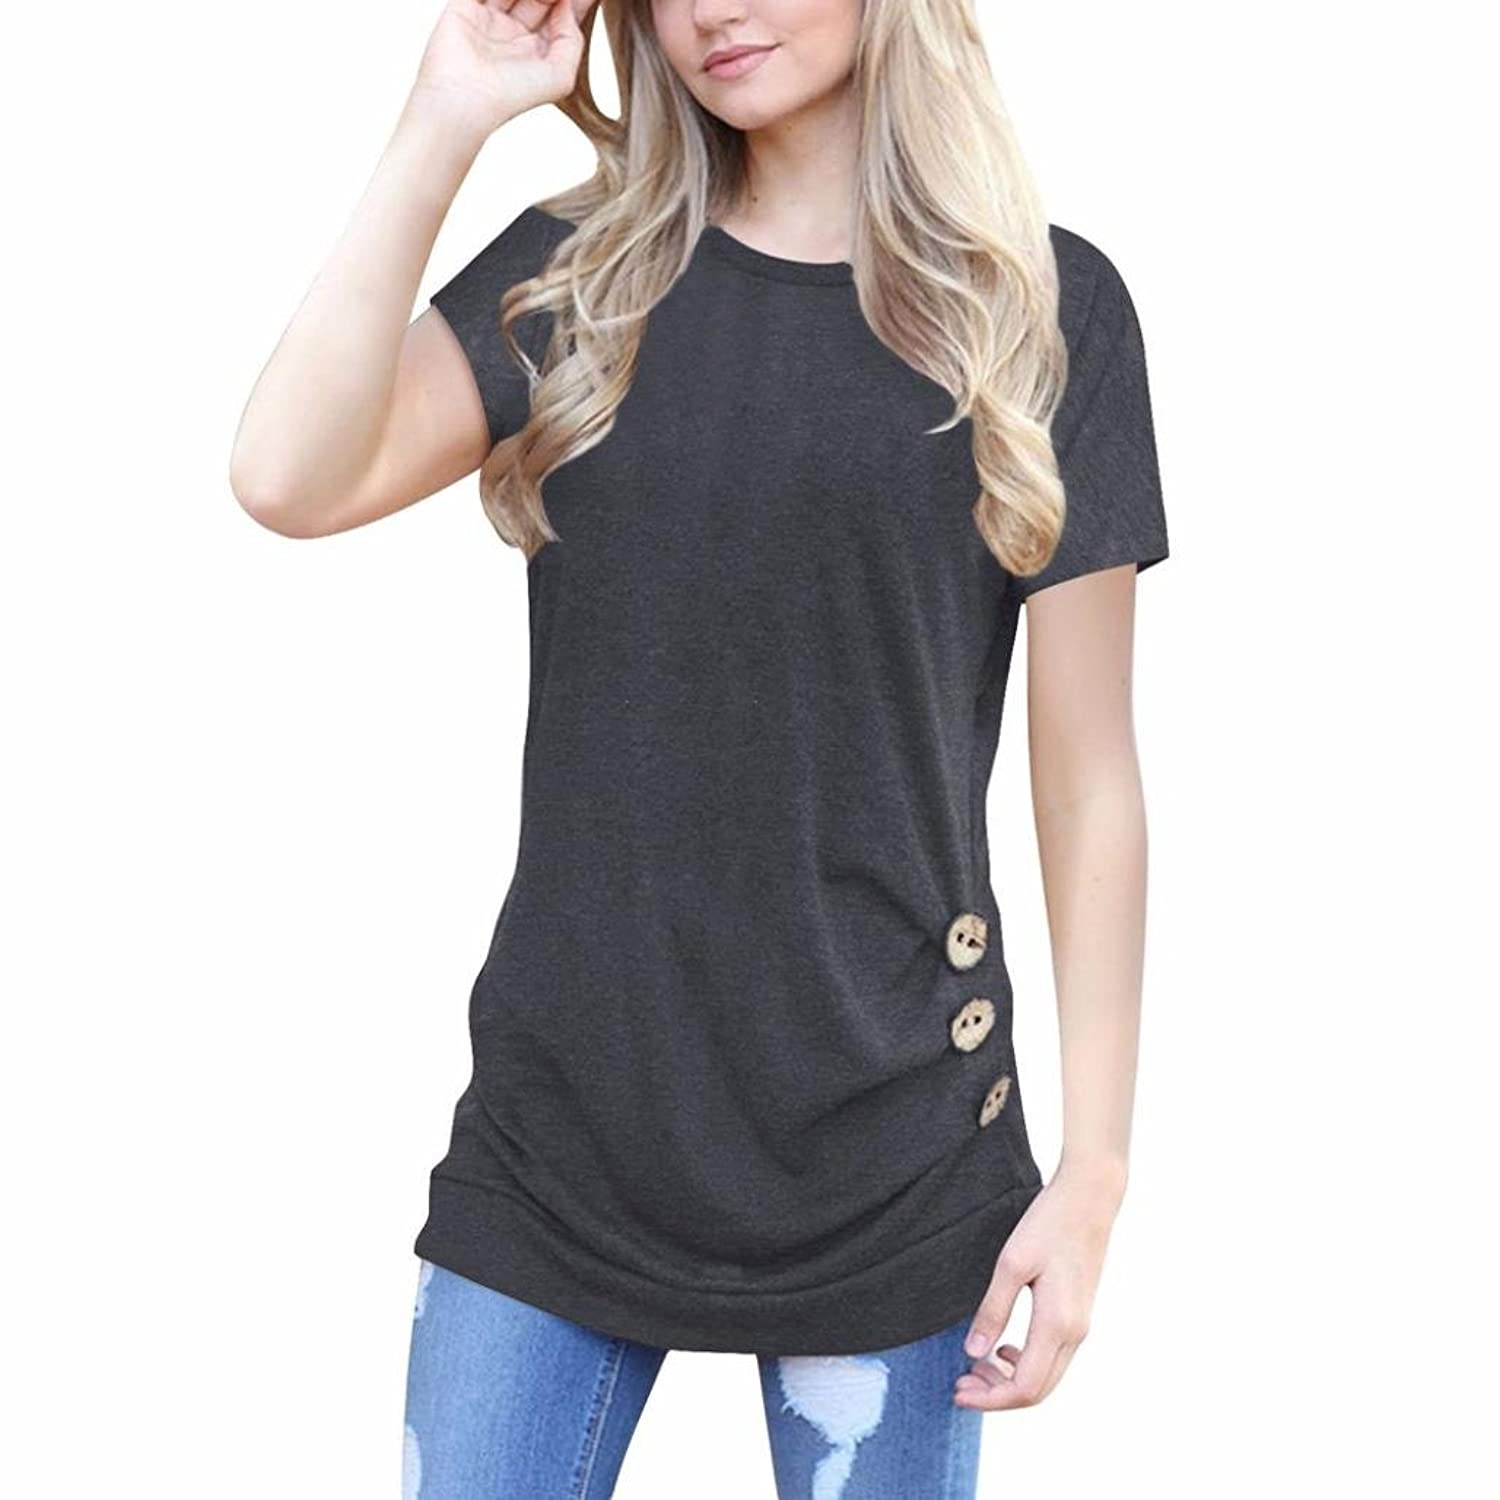 0a1020274745 ♛Welcome to CUCUHAM Women's Clothing Store, CUCUHAM is a fashion store that  focuses on women's apparel. If you need other types of women's apparel, ...